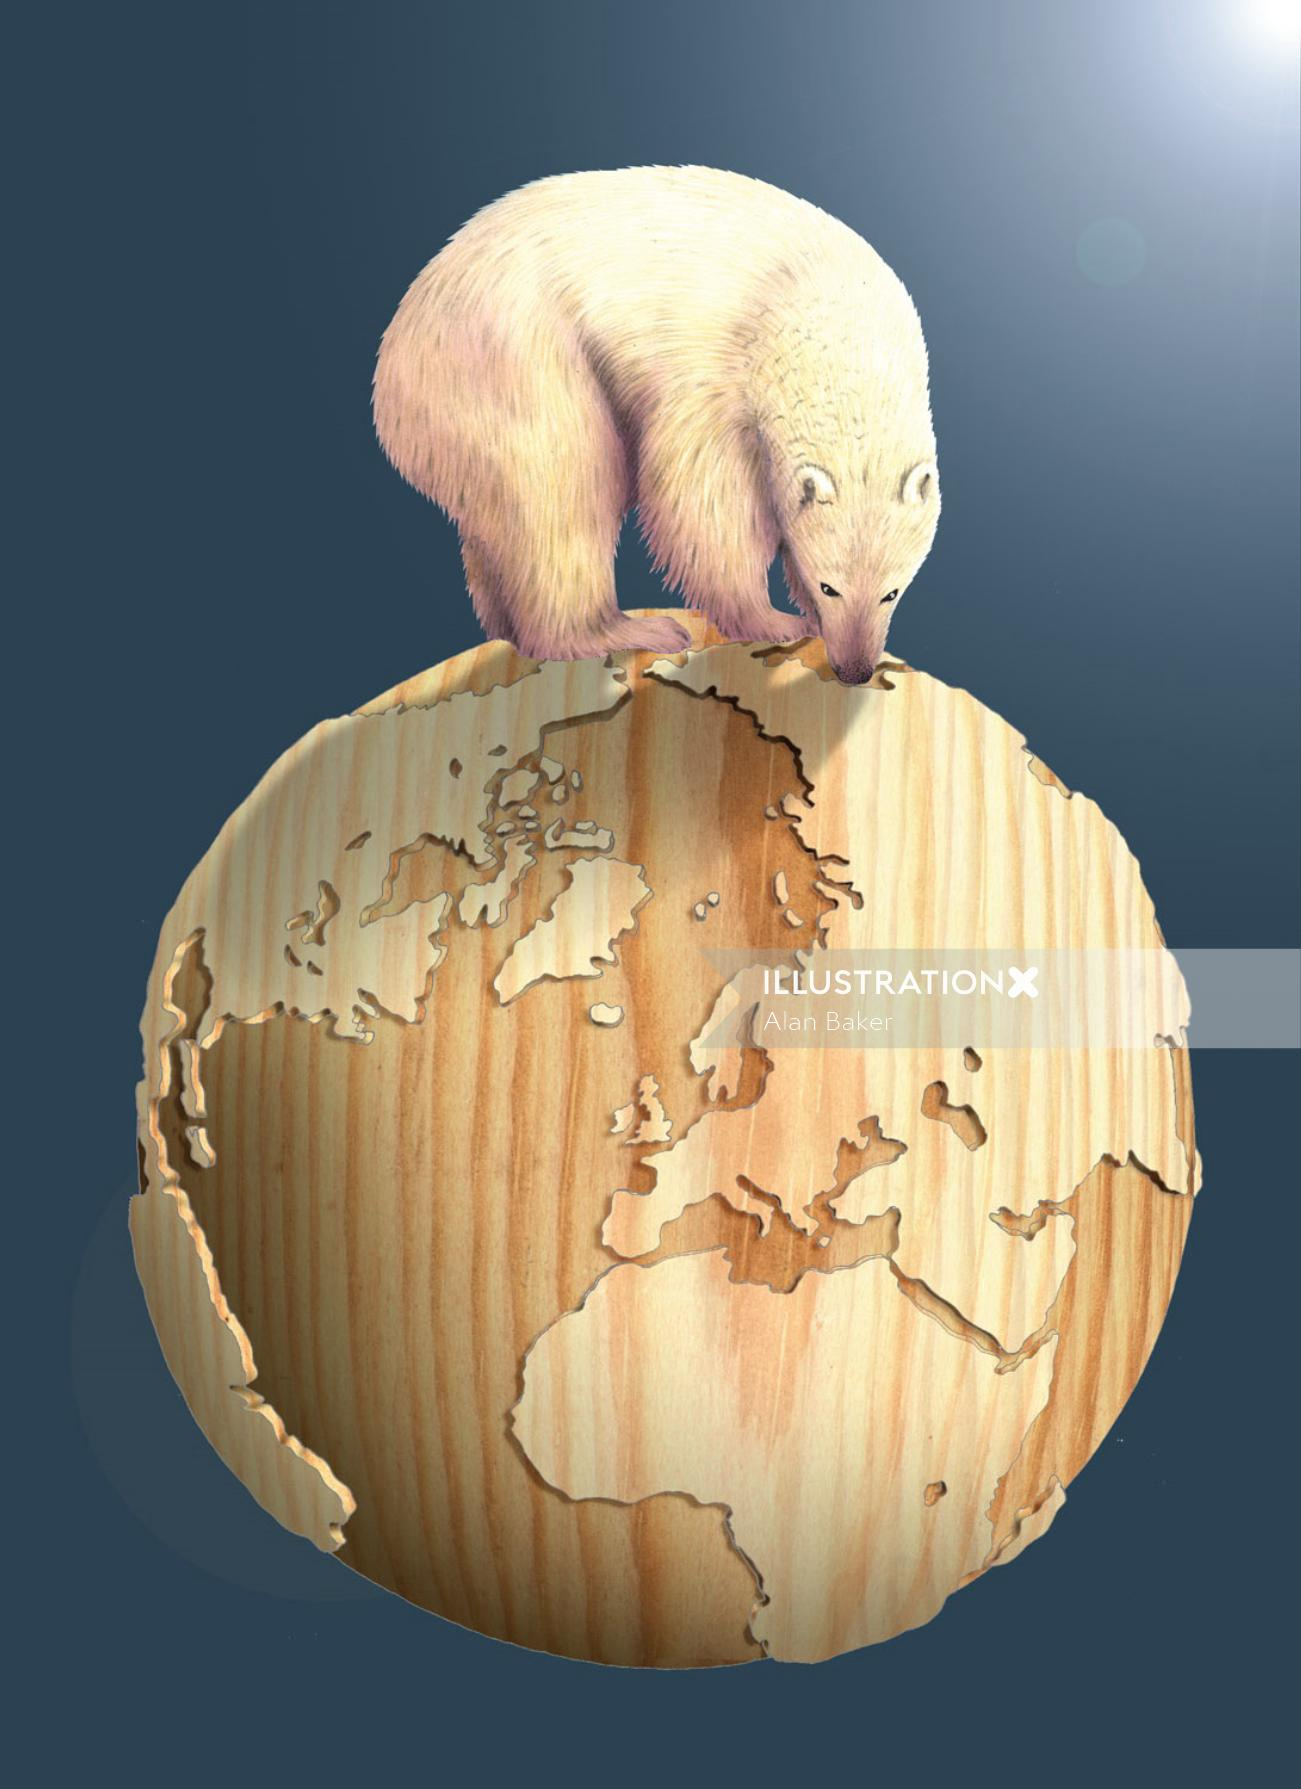 Polar bear on wooden globe - An illustration by Alan Baker